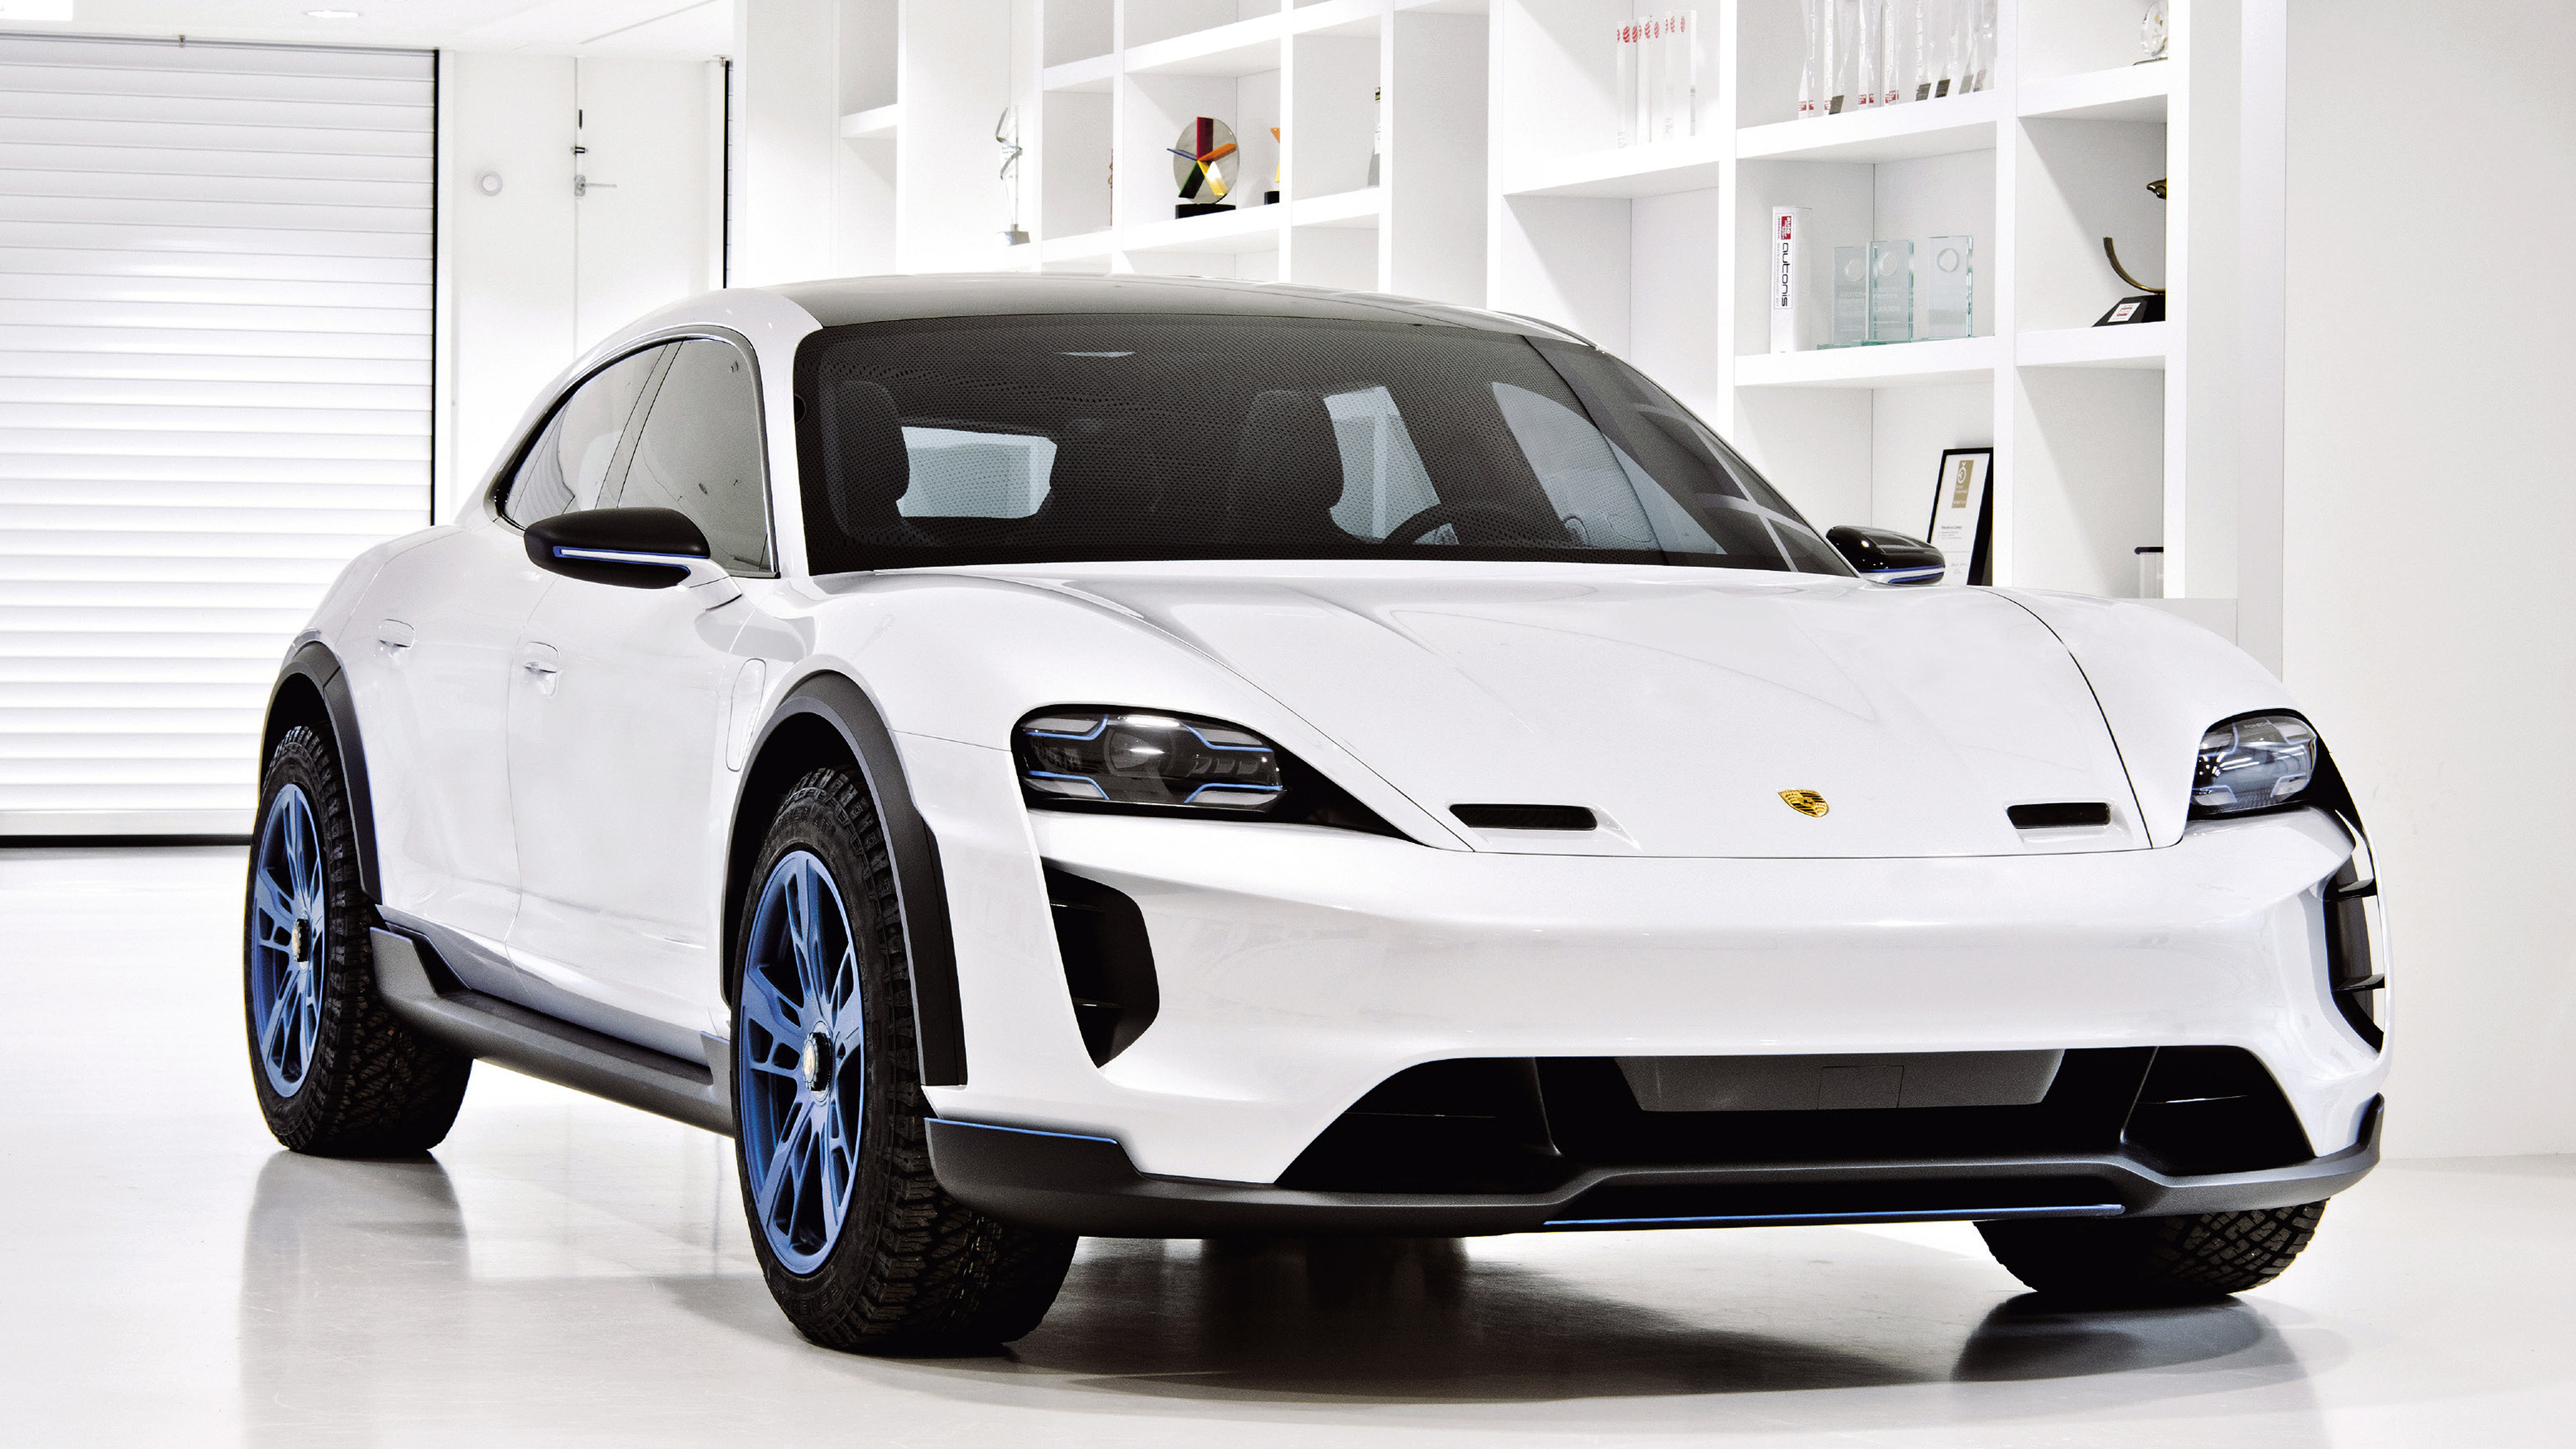 porsche mission e cross turismo 2018 1539111920 - Porsche Mission E Cross Turismo 2018 - porsche wallpapers, porsche mission e cross turismo wallpapers, hd-wallpapers, cars wallpapers, 4k-wallpapers, 2018 cars wallpapers